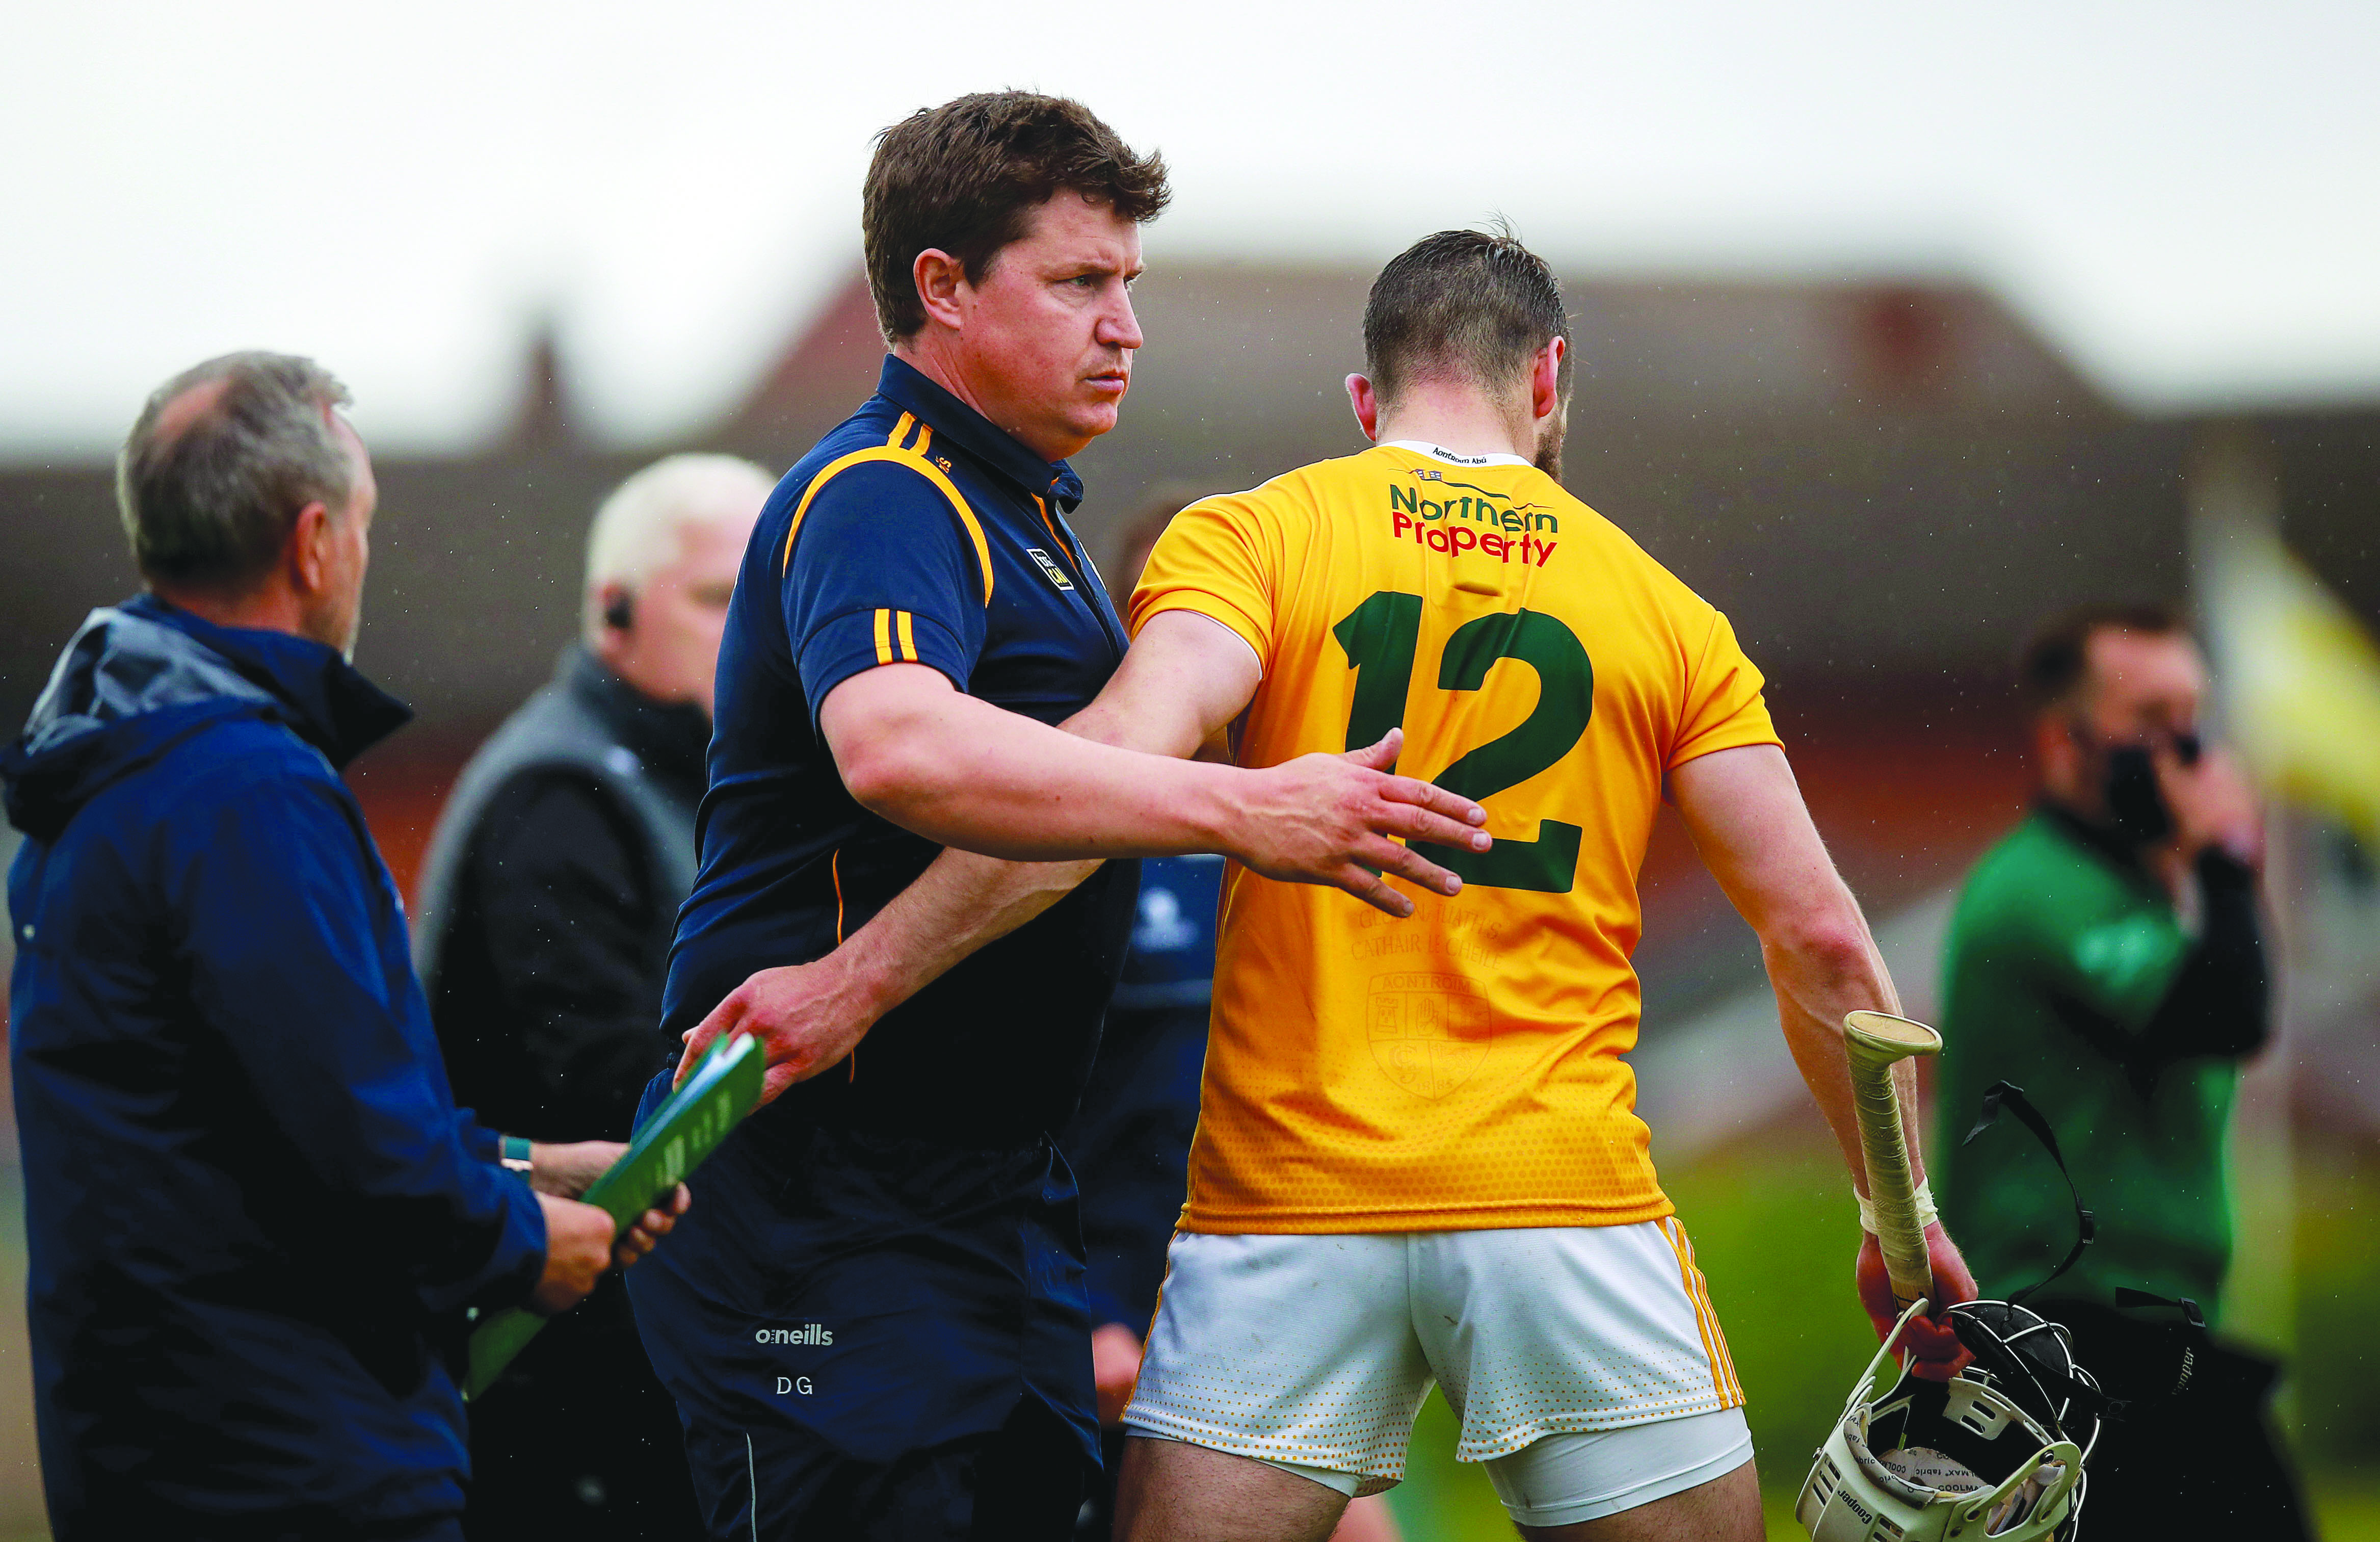 Antrim manager Darren Gleeson insists Saturday's game against Laois at Corrigan Park remains key as they seek to maintain momentum